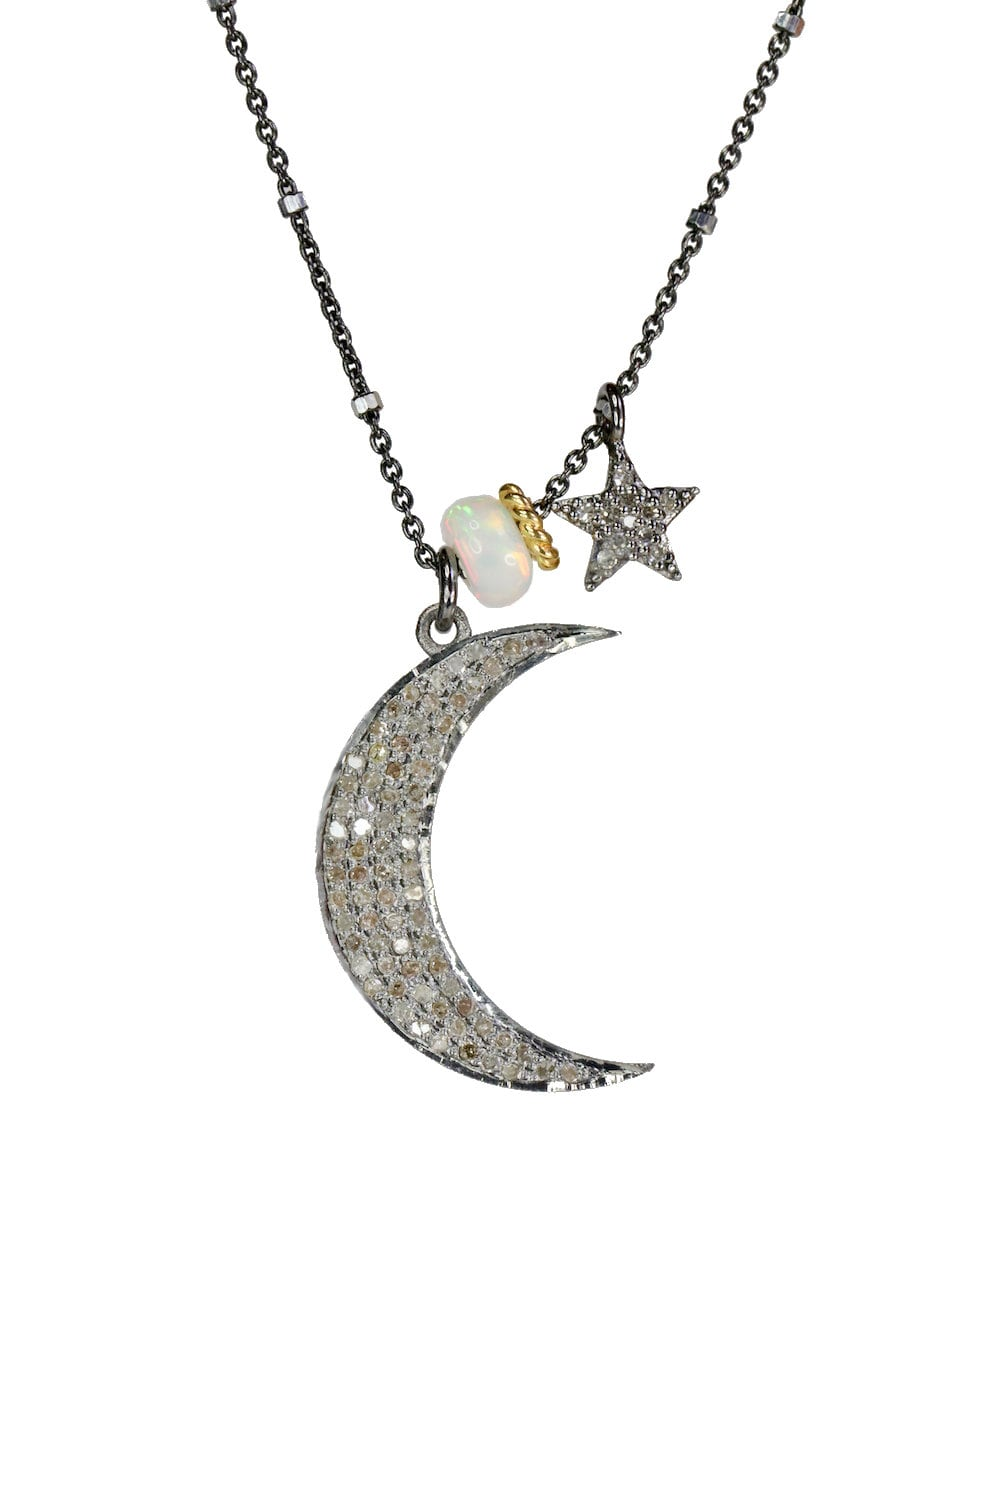 Diamond Moon Star Necklace Opal Gemstone Mixed Metal October Birthstone Birthday Gift For Her